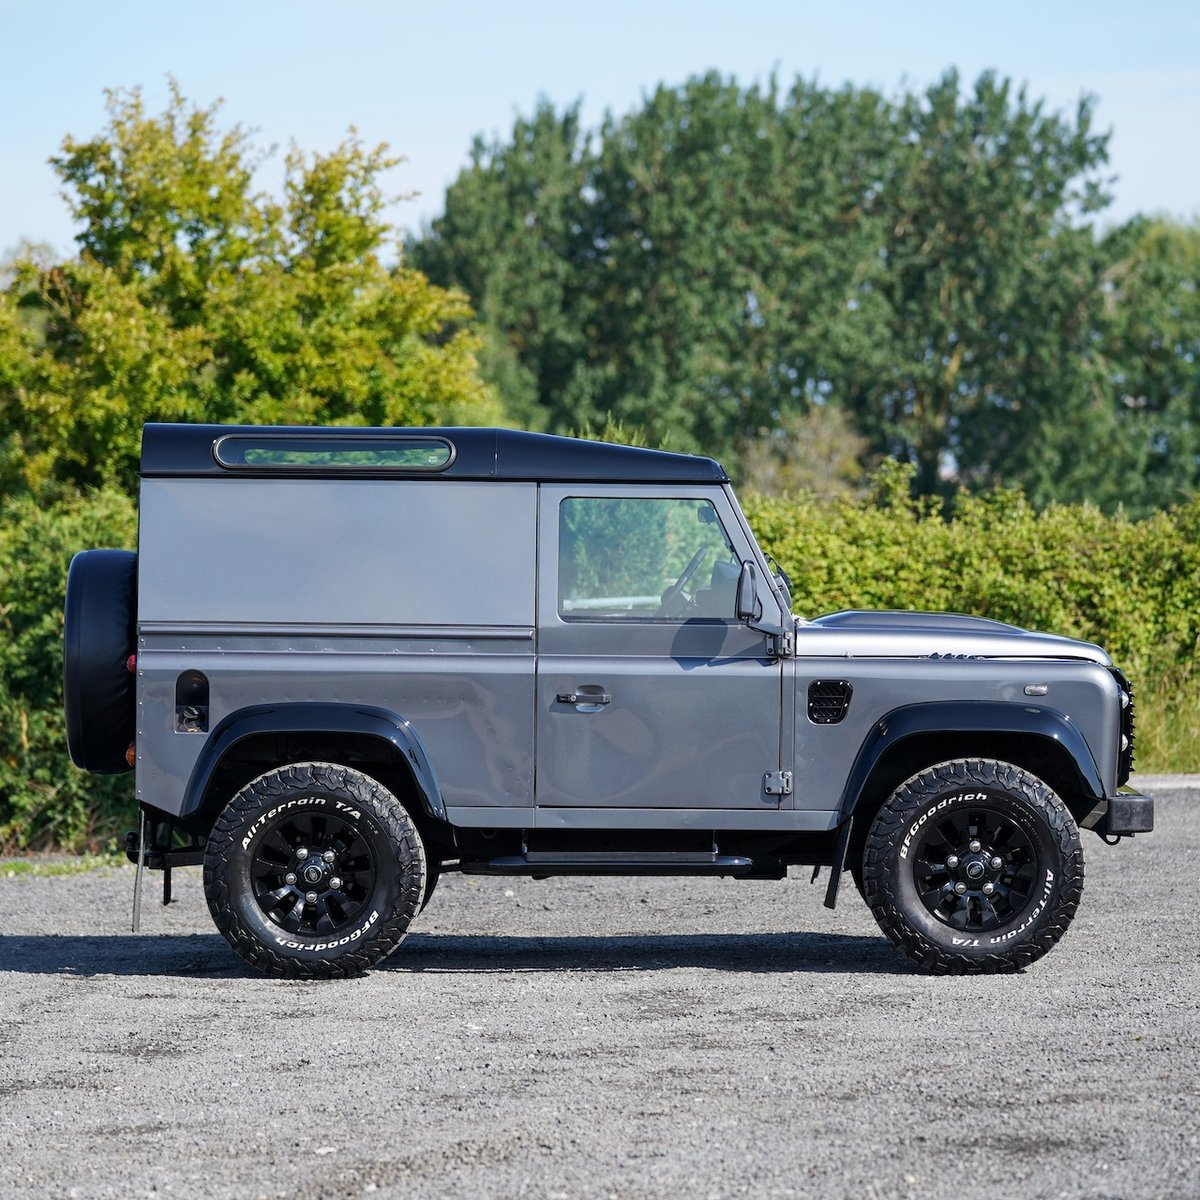 Land Rover Defender 90 2.2TD 2014 64 County Hardtop 1 Owner SOLD (picture 2 of 6)